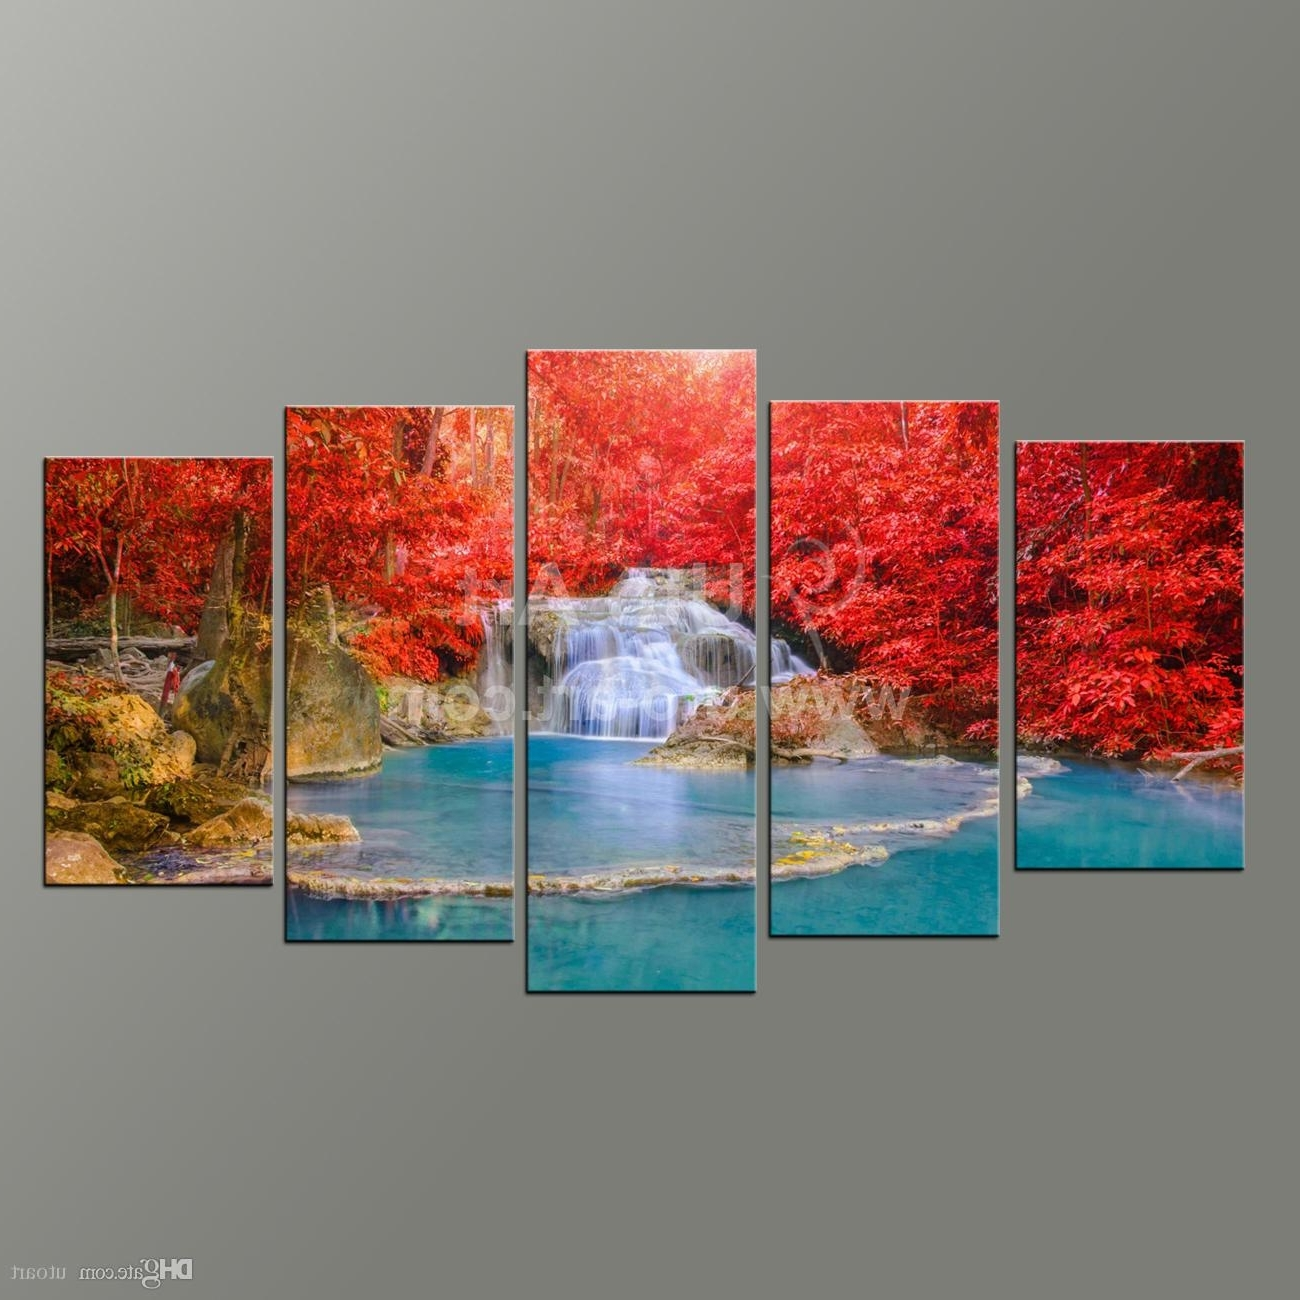 Fashionable Wall Art Paintings Inside 2018 5 Panel Wall Art Paintings Landscaping Waterfall Picture And (View 5 of 15)